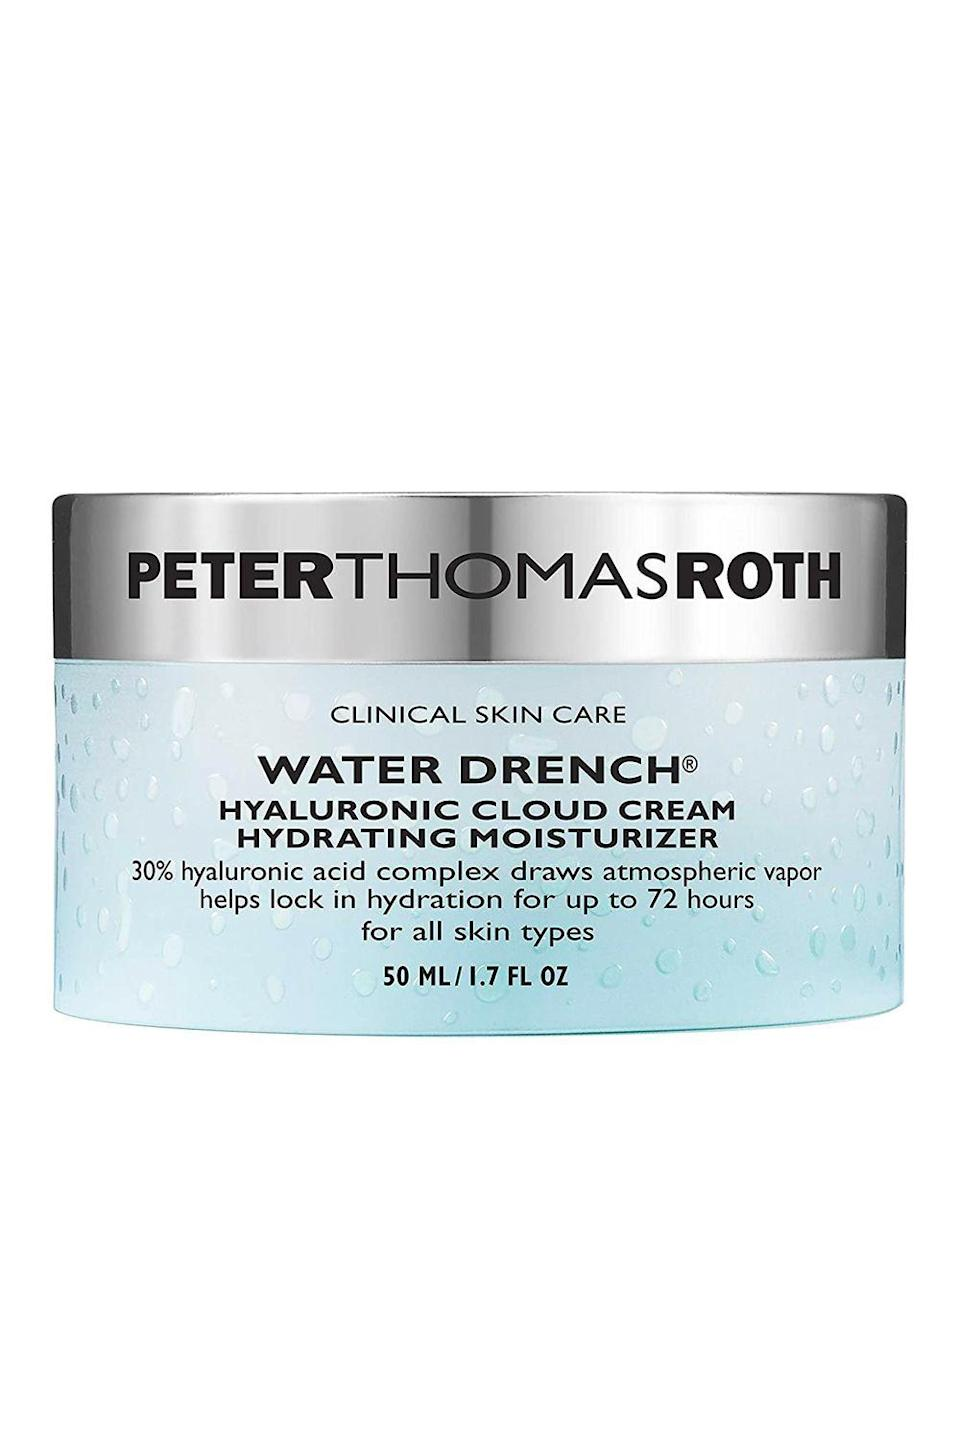 "<p><strong>Peter Thomas Roth</strong></p><p>beautybay.com</p><p><strong>$58.00</strong></p><p><a href=""https://go.redirectingat.com?id=74968X1596630&url=https%3A%2F%2Fwww.beautybay.com%2Fp%2Fpeter-thomas-roth%2Fwater-drench-hyaluronic-cloud-cream%2F&sref=https%3A%2F%2Fwww.cosmopolitan.com%2Fstyle-beauty%2Fbeauty%2Fg35492705%2Fhauliday-winter-skincare-deals-2021%2F"" rel=""nofollow noopener"" target=""_blank"" data-ylk=""slk:Shop Now"" class=""link rapid-noclick-resp"">Shop Now</a></p><p>The hero ingredient in this moisturizer? A whopping 30 percent <a href=""https://www.cosmopolitan.com/style-beauty/beauty/g28948492/best-hyaluronic-acid-serum/"" rel=""nofollow noopener"" target=""_blank"" data-ylk=""slk:hyaluronic acid"" class=""link rapid-noclick-resp"">hyaluronic acid</a>. The humectant is loved by dermatologists for its ability to draw moisture from the air into your skin for a plumping and hydrating effect that's both immediate and long-lasting.</p><p><strong>✨PROMOTION:</strong> Get 21 percent off with the code HAULIDAY</p>"